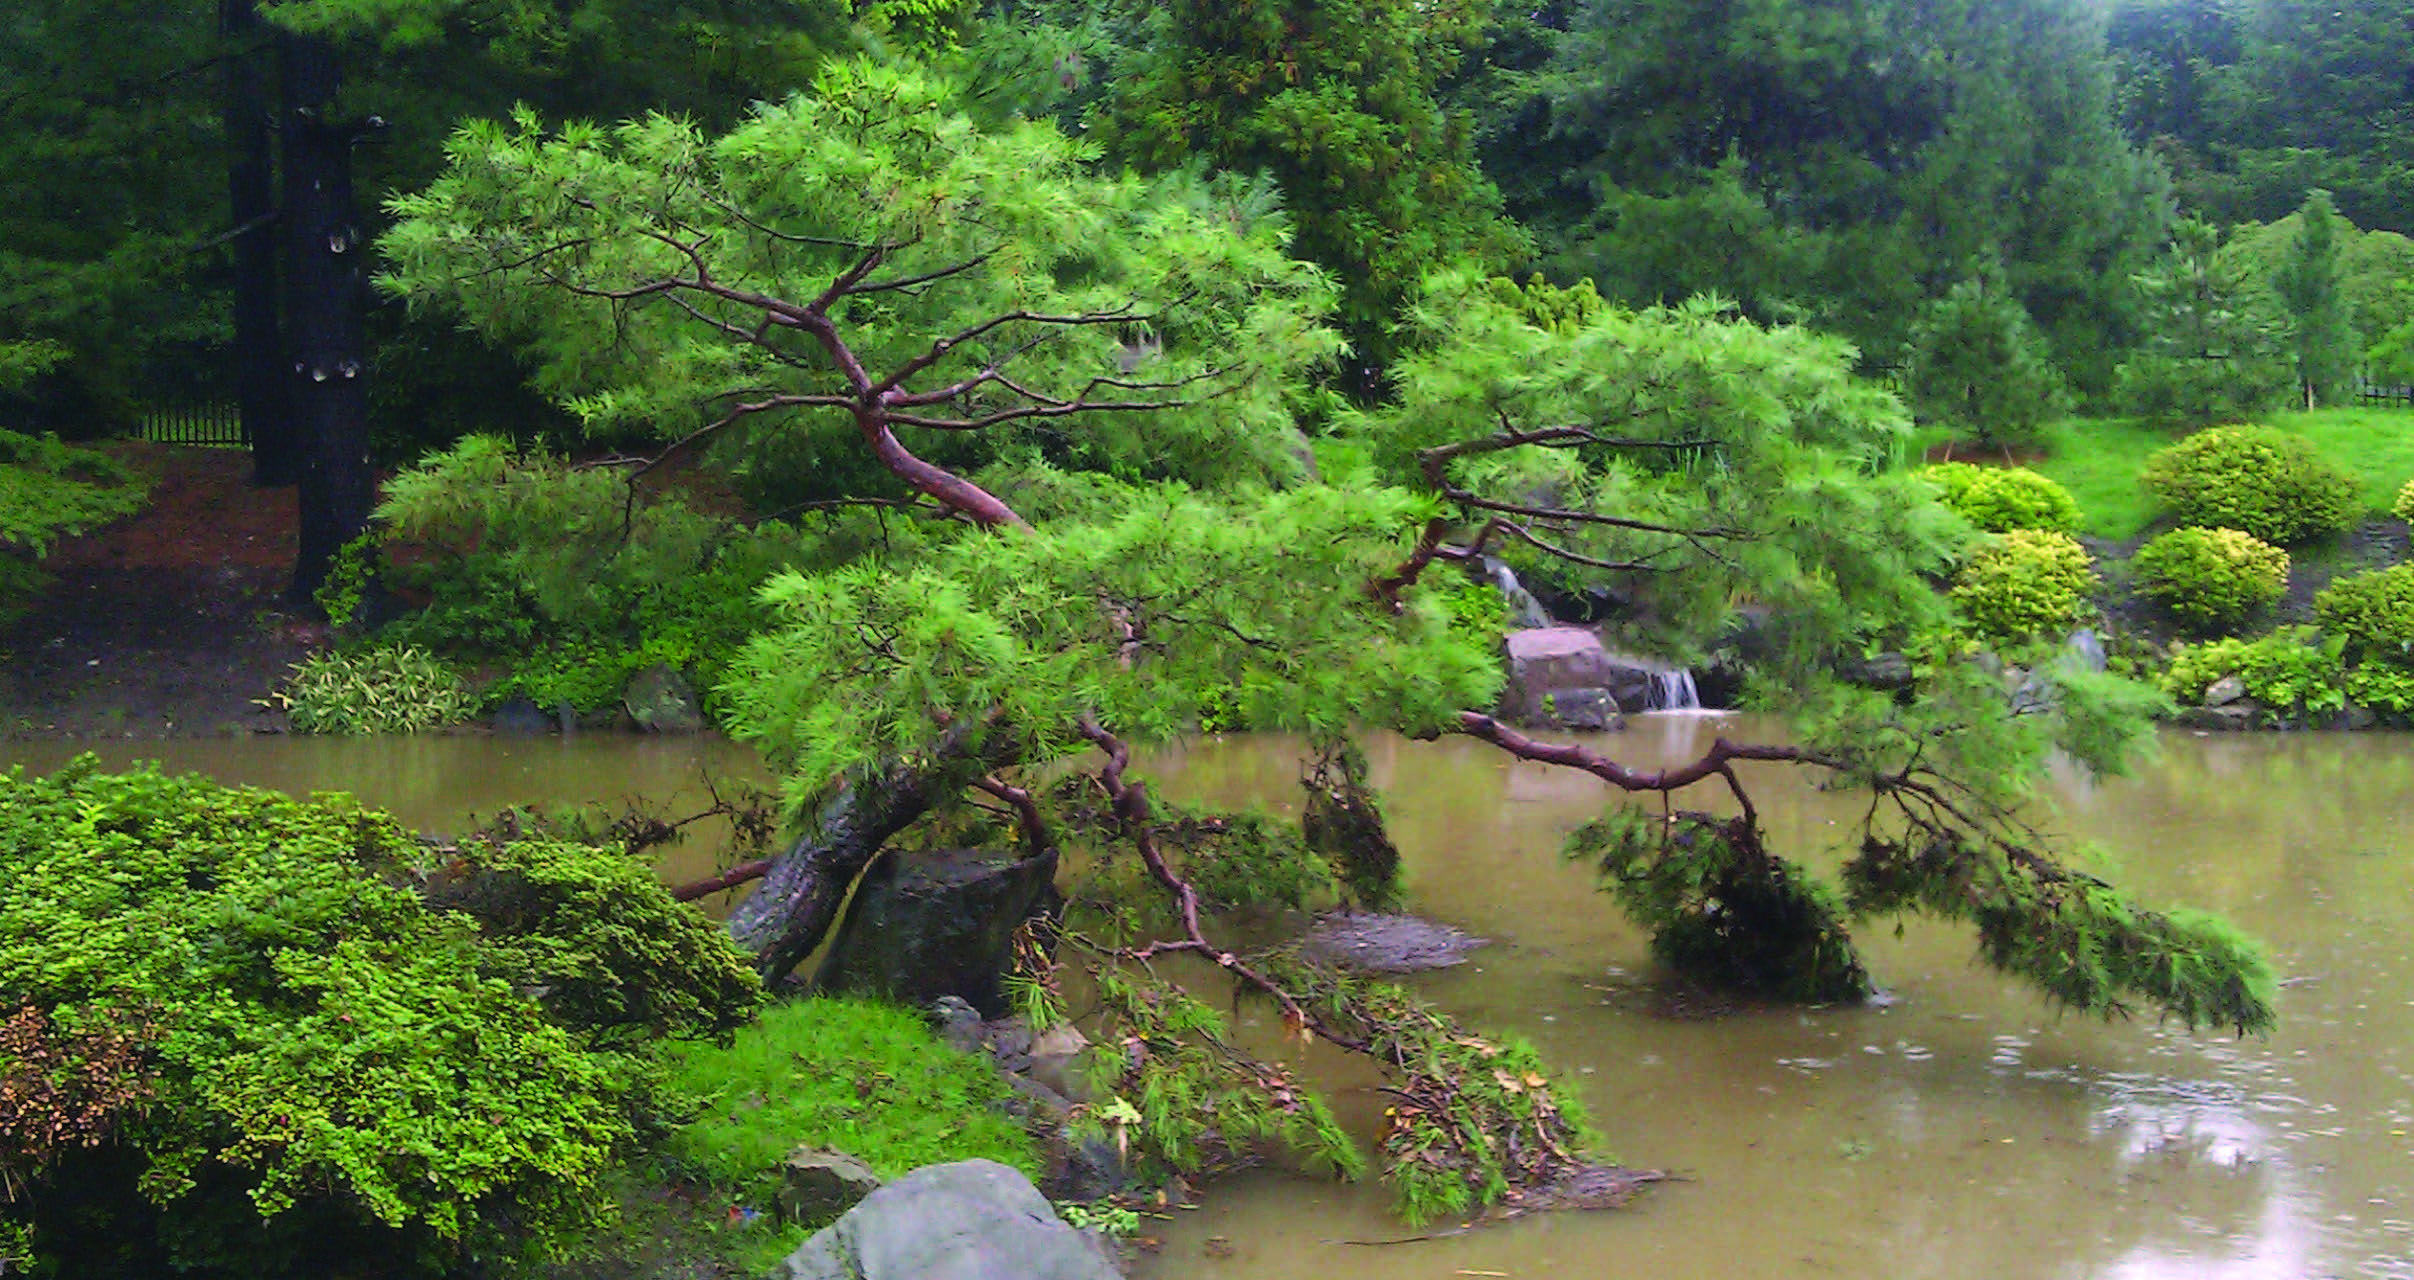 By Flood, Pest or Wind: Disaster Preparedness and Response for Japanese Gardens